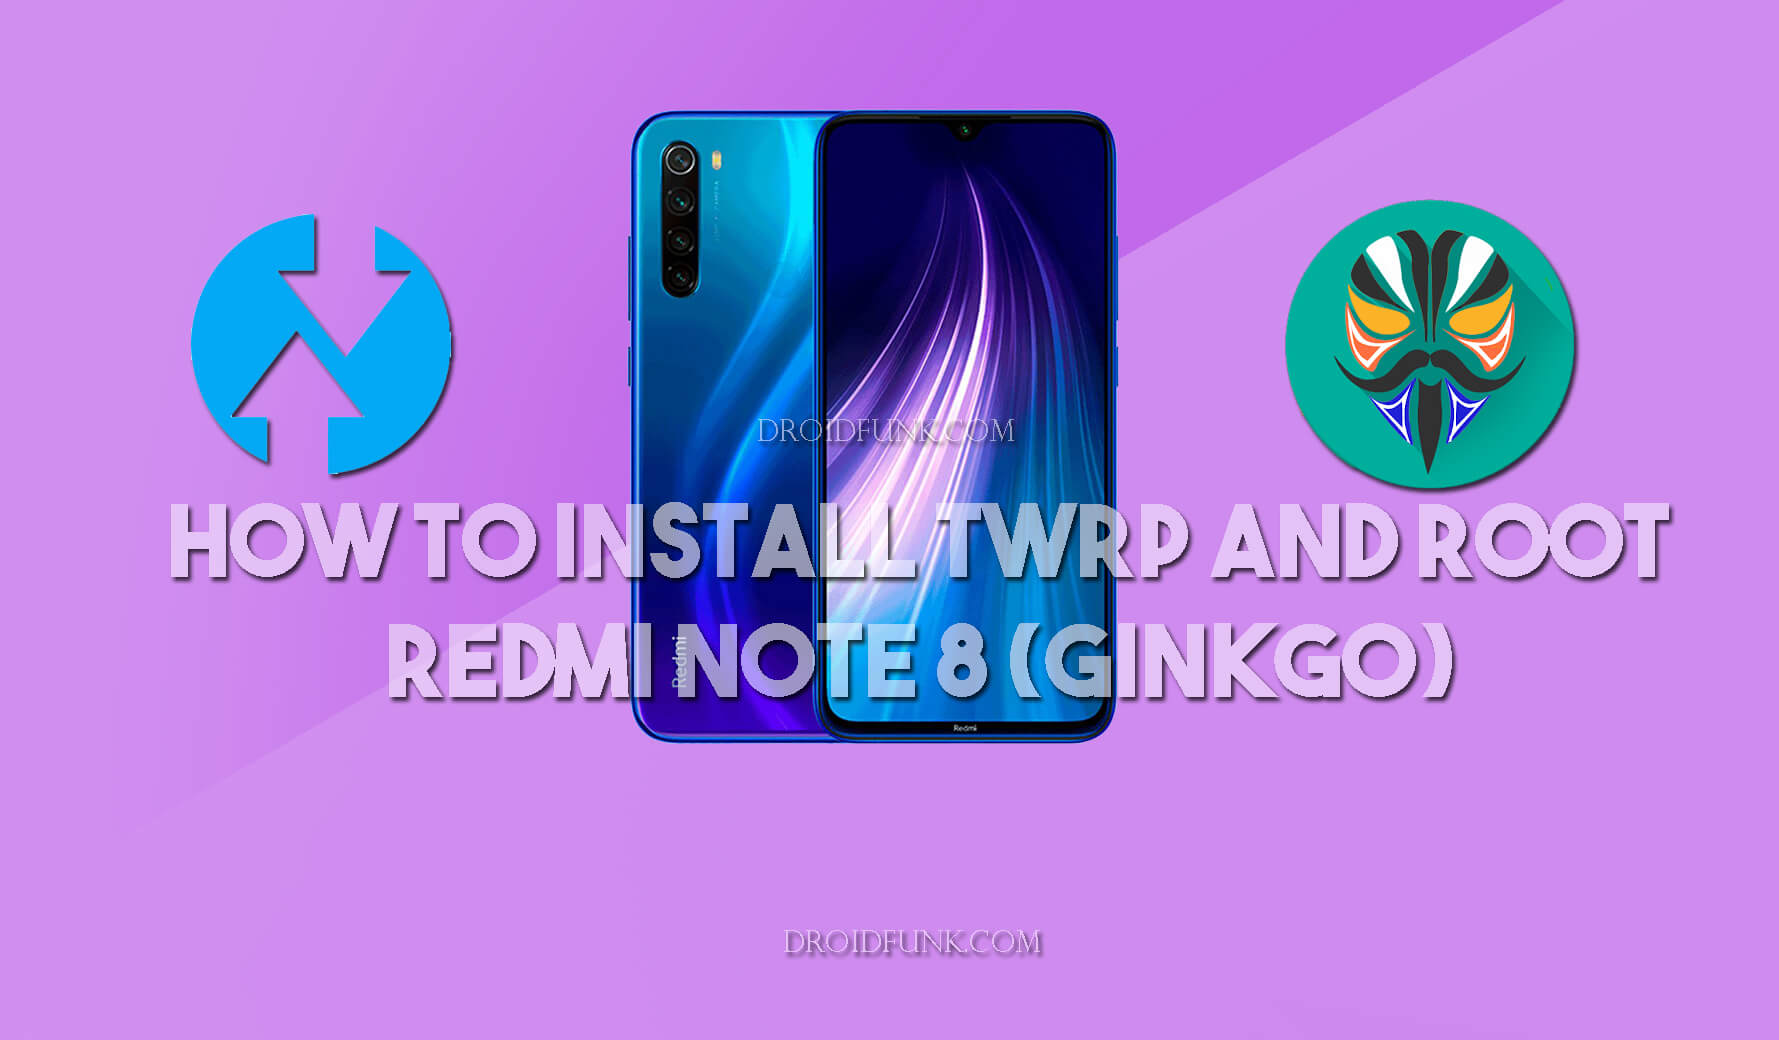 How to Install TWRP in Redmi Note 8